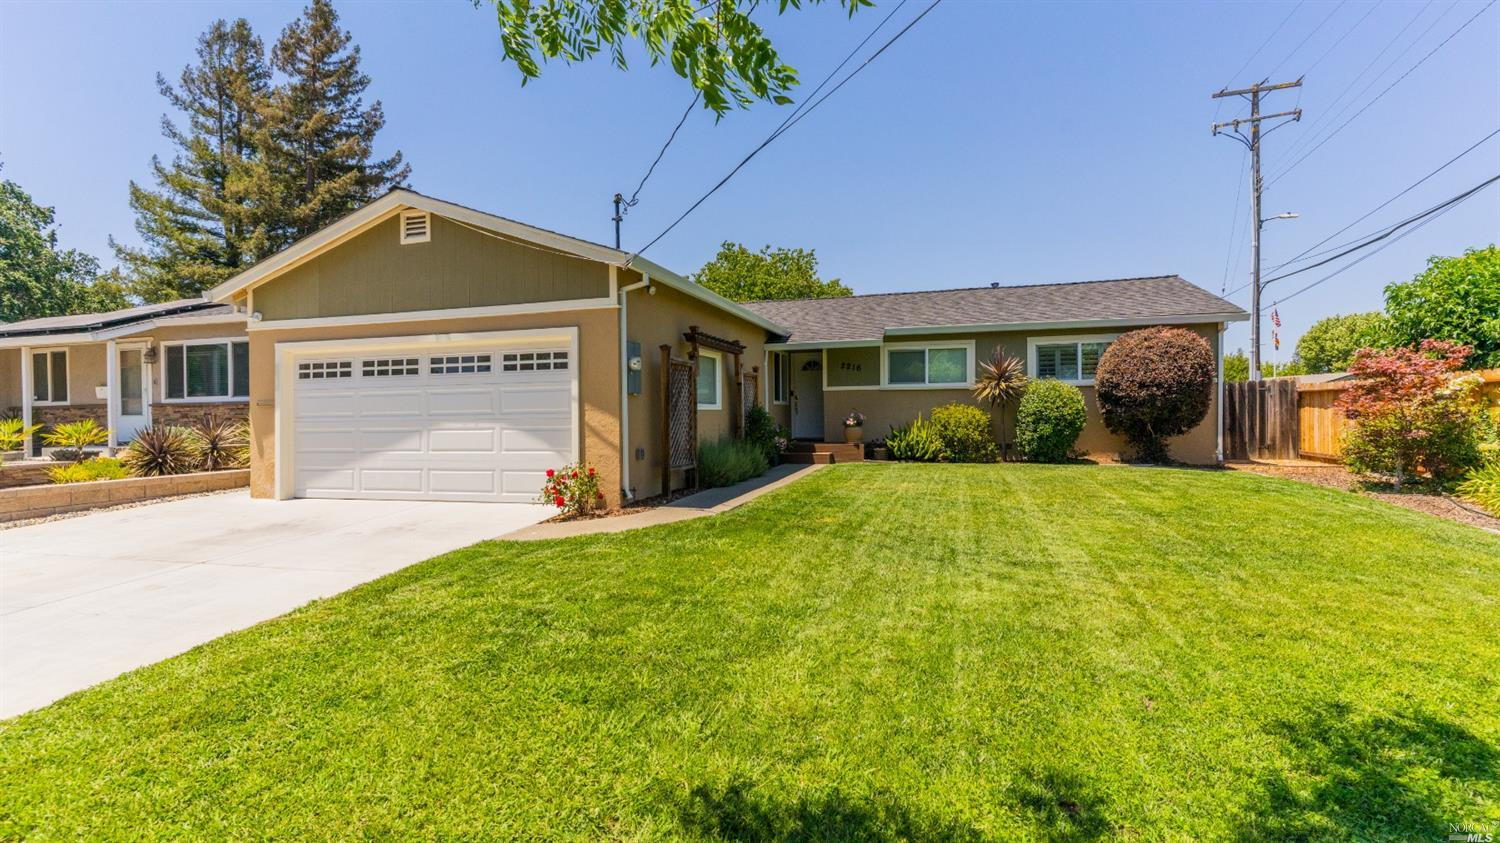 Live in Napa in this updated beauty! Single story home with so many updates and luxurious features.